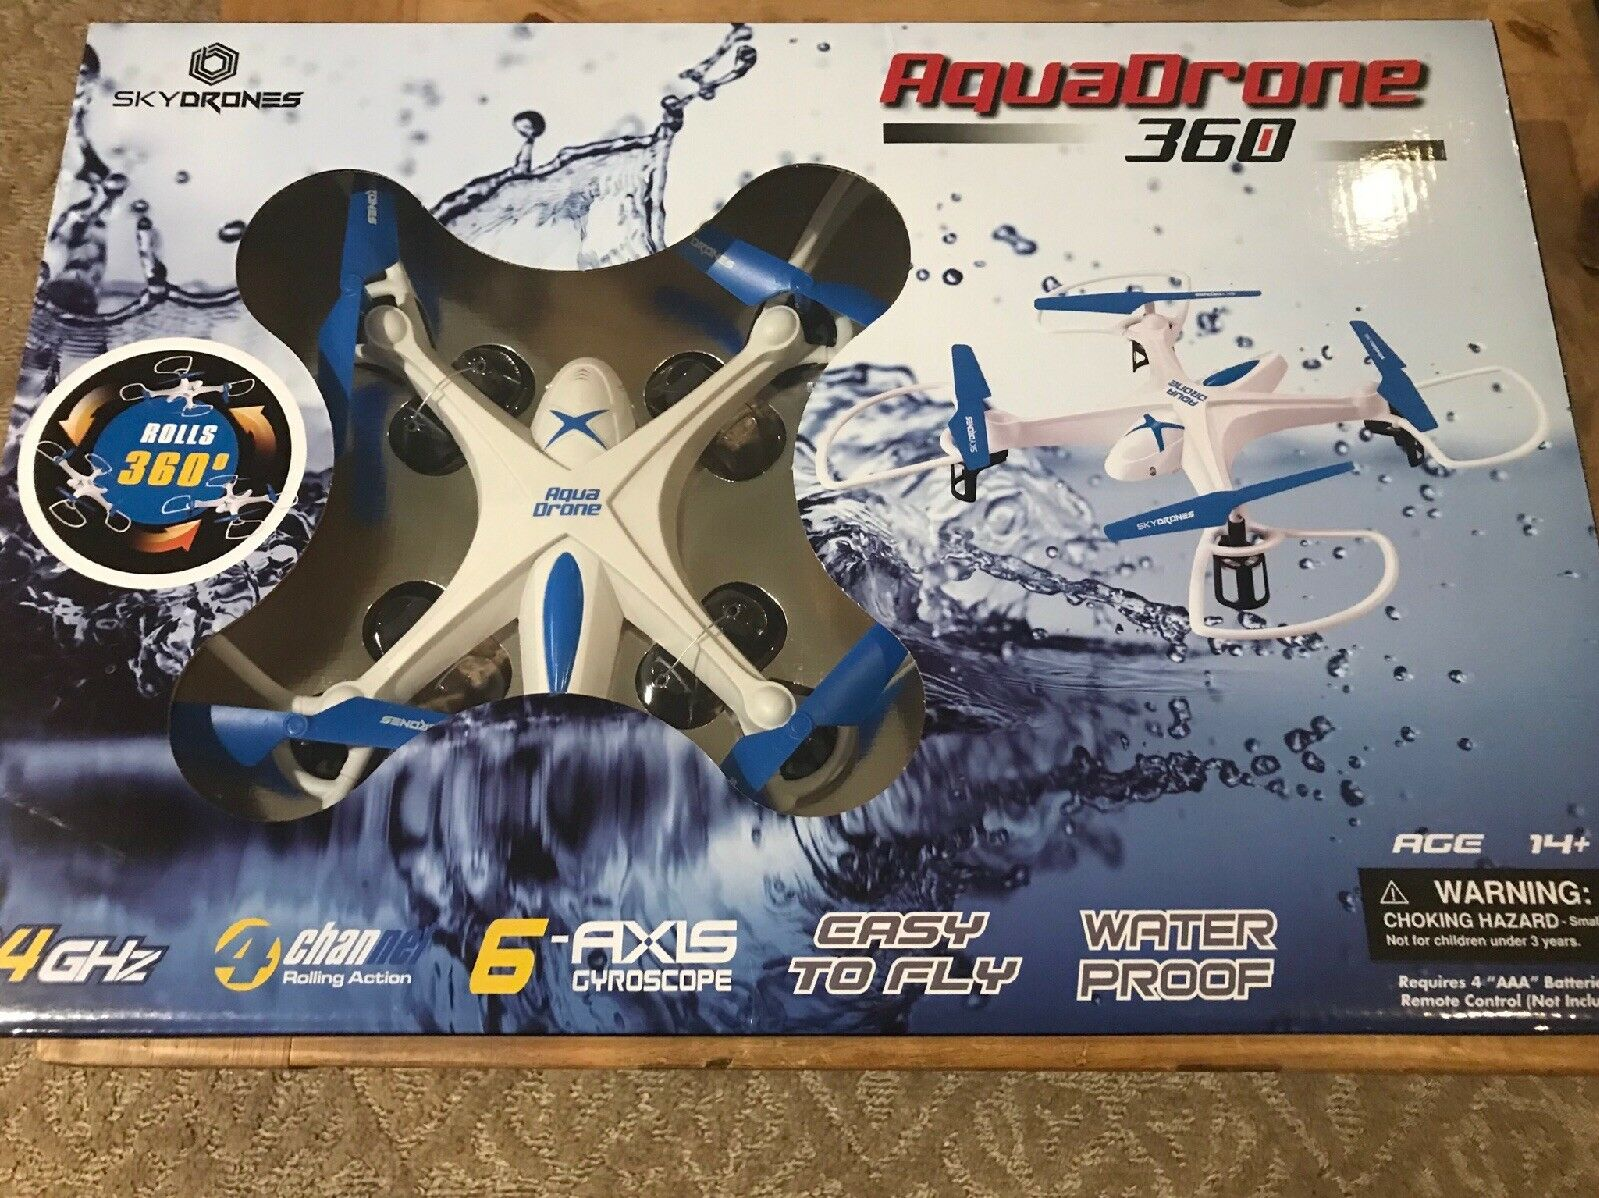 Aqua Drone 2.4 GHZ Waterproof RC QuadCopter, Remote Control Water Water Water proof New 50071b